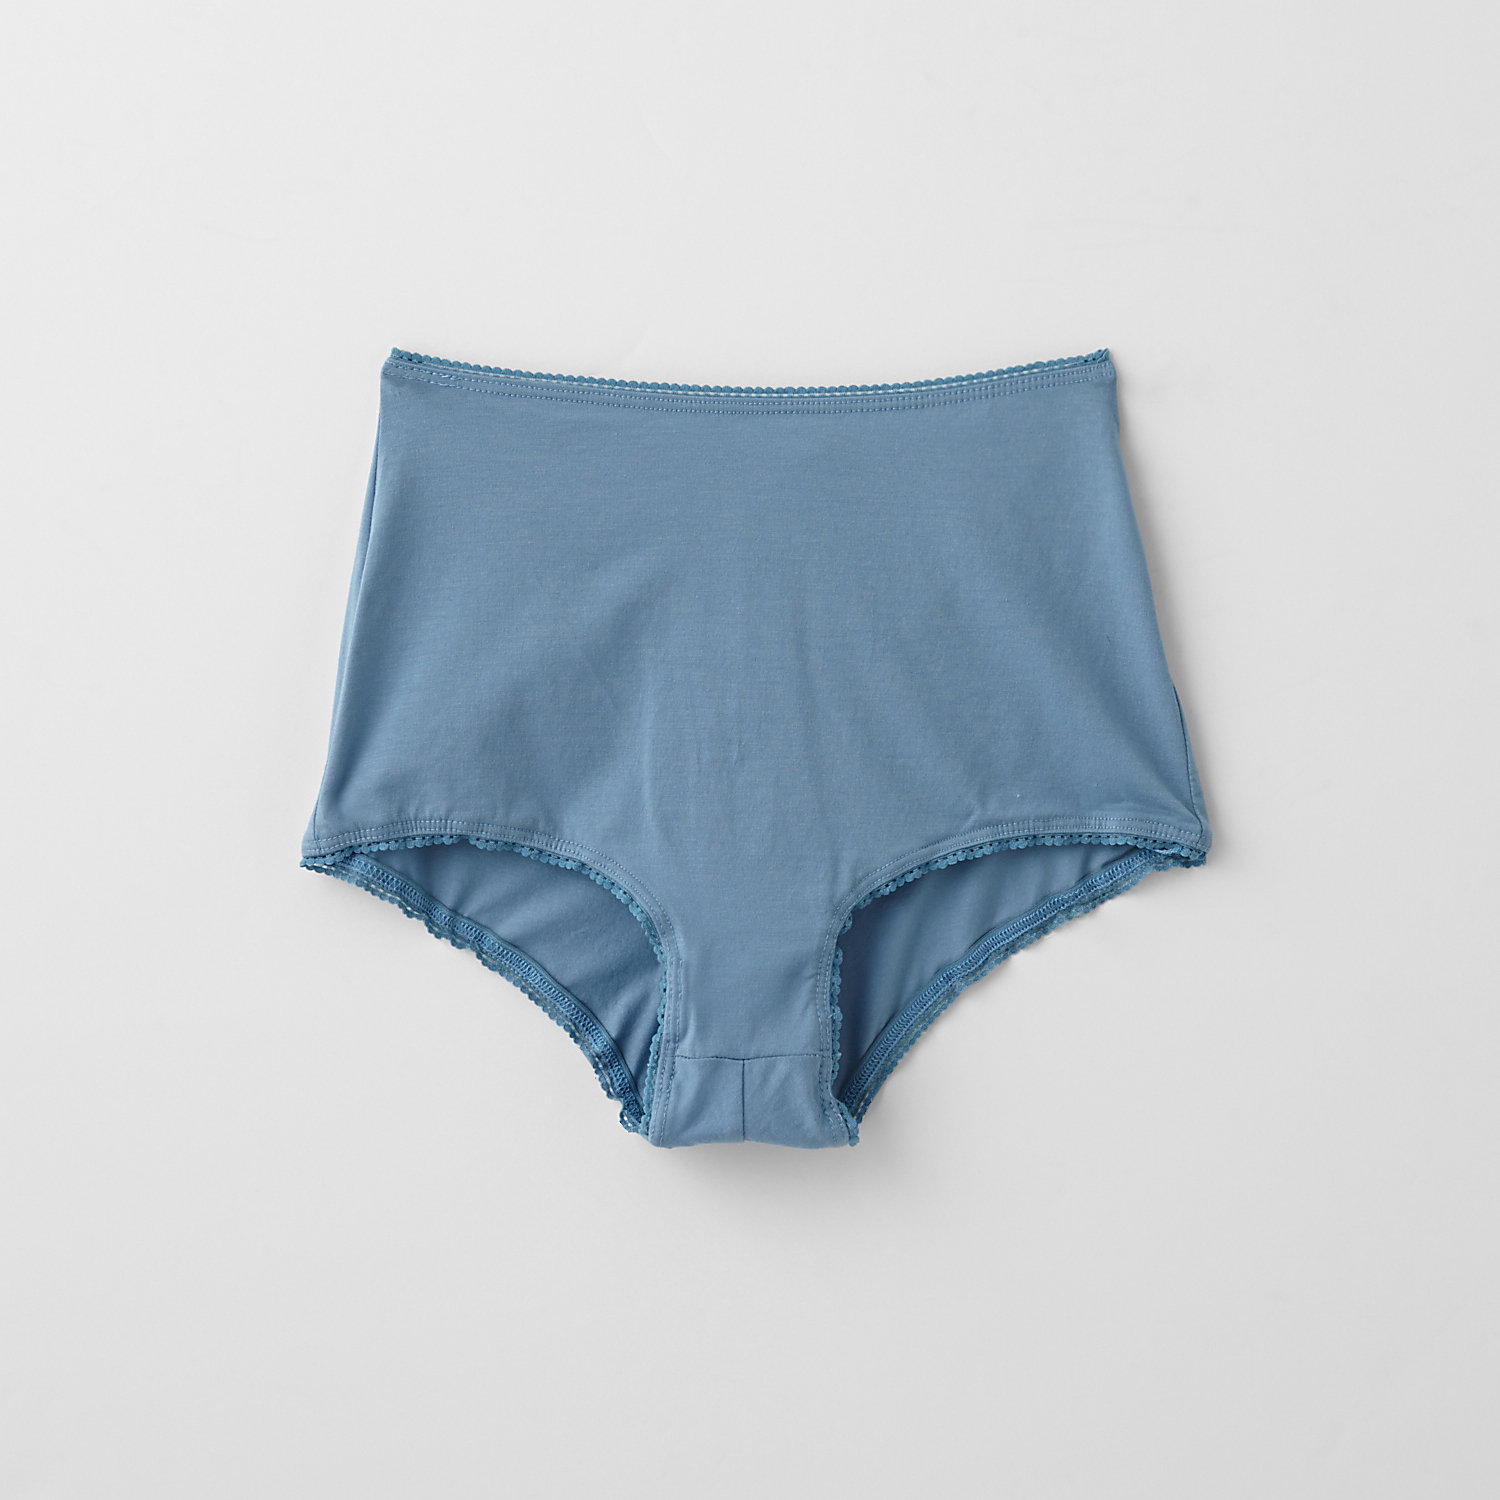 TEN HIGH WAISTED UNDIES